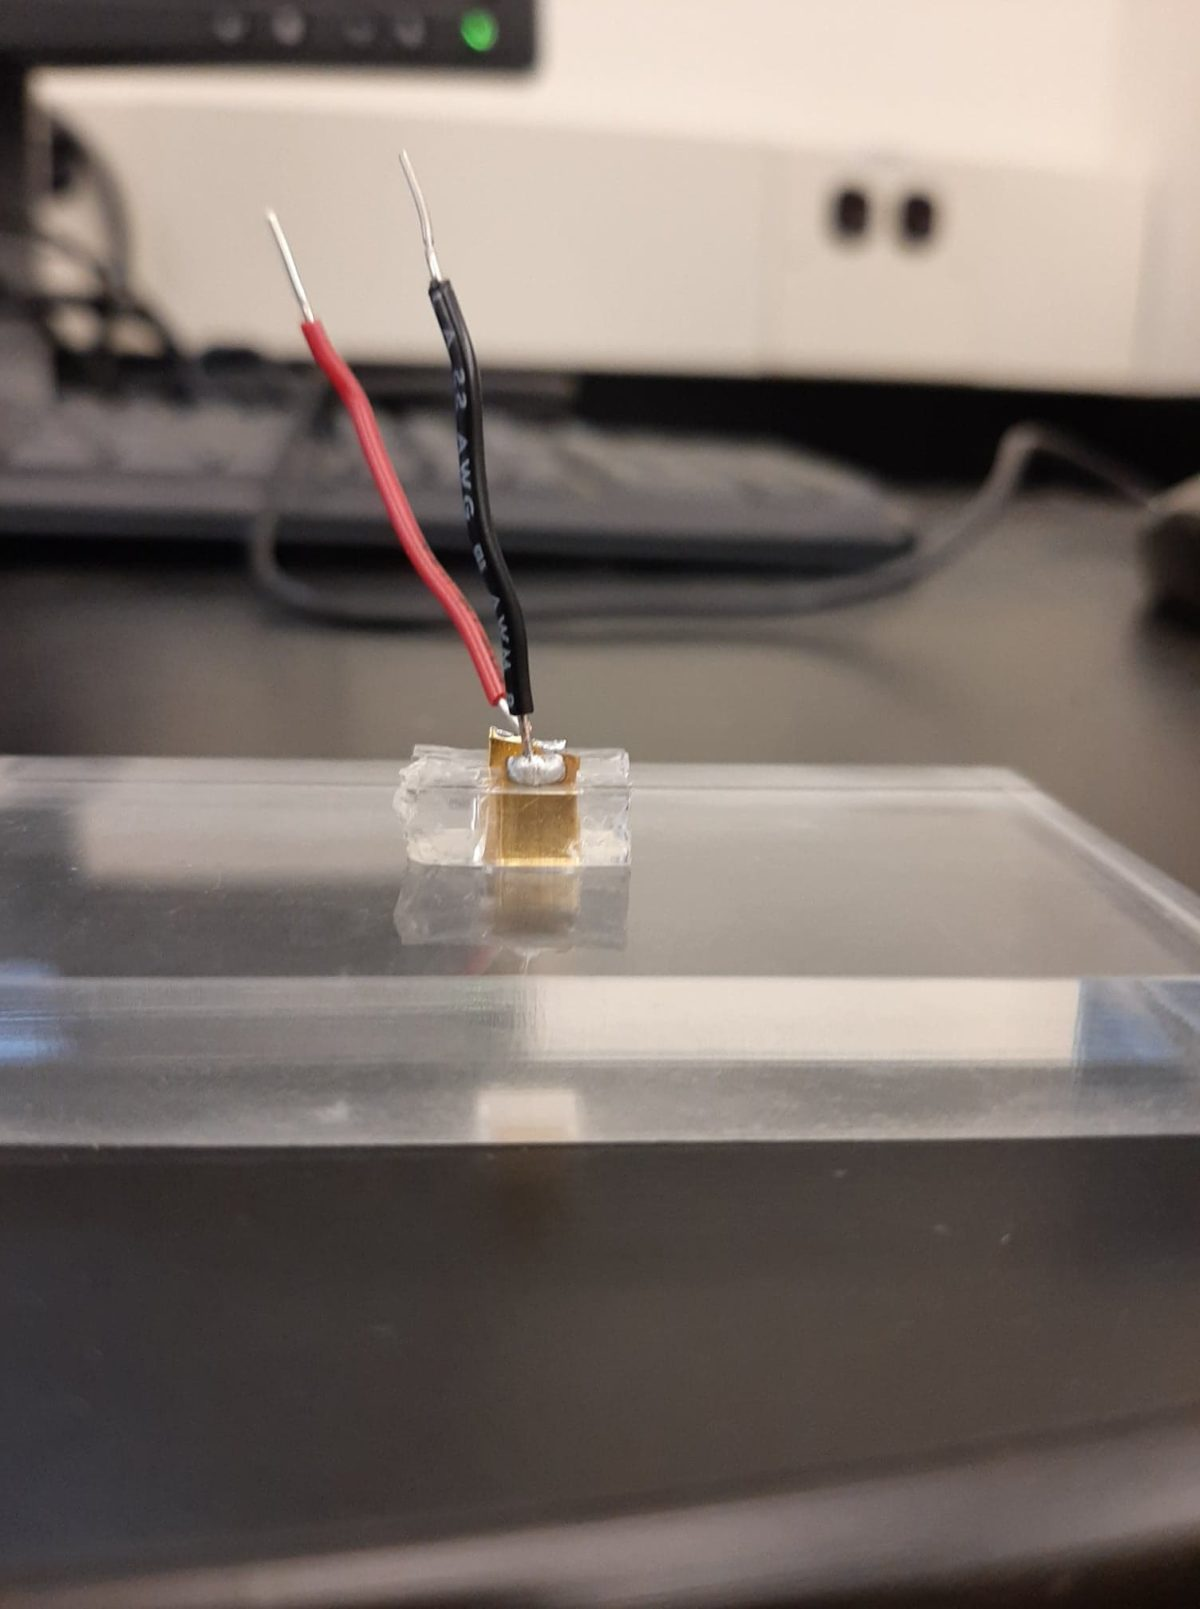 Prototype of blood chamber with attached electrodes